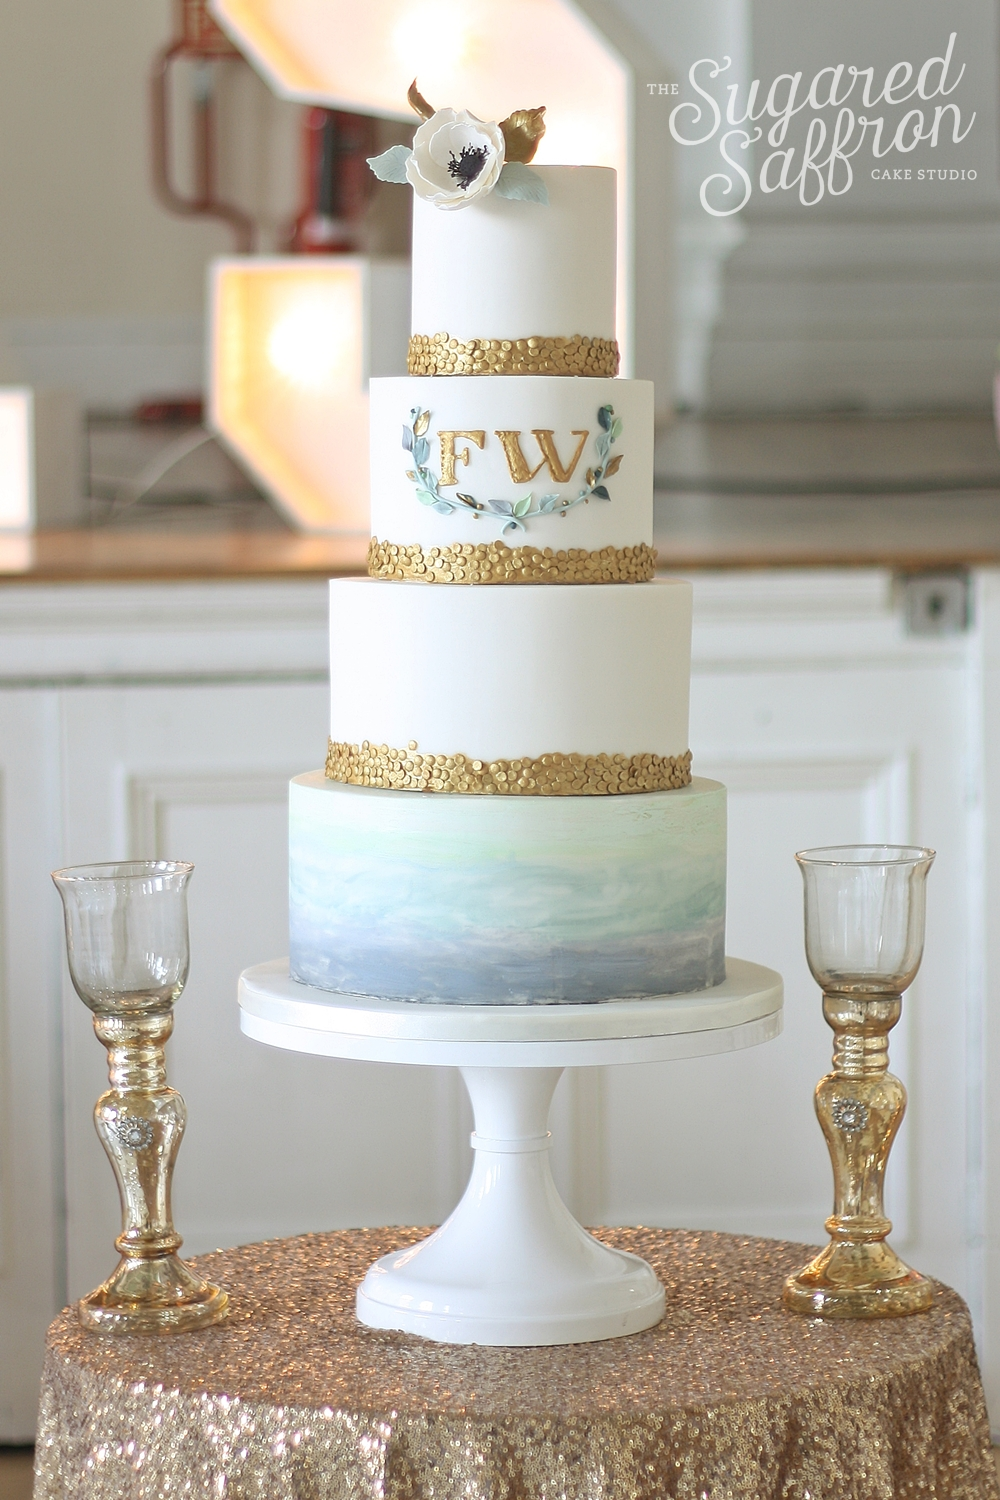 london wedding cake tasting wedding cake gallery wedding cakes 16932